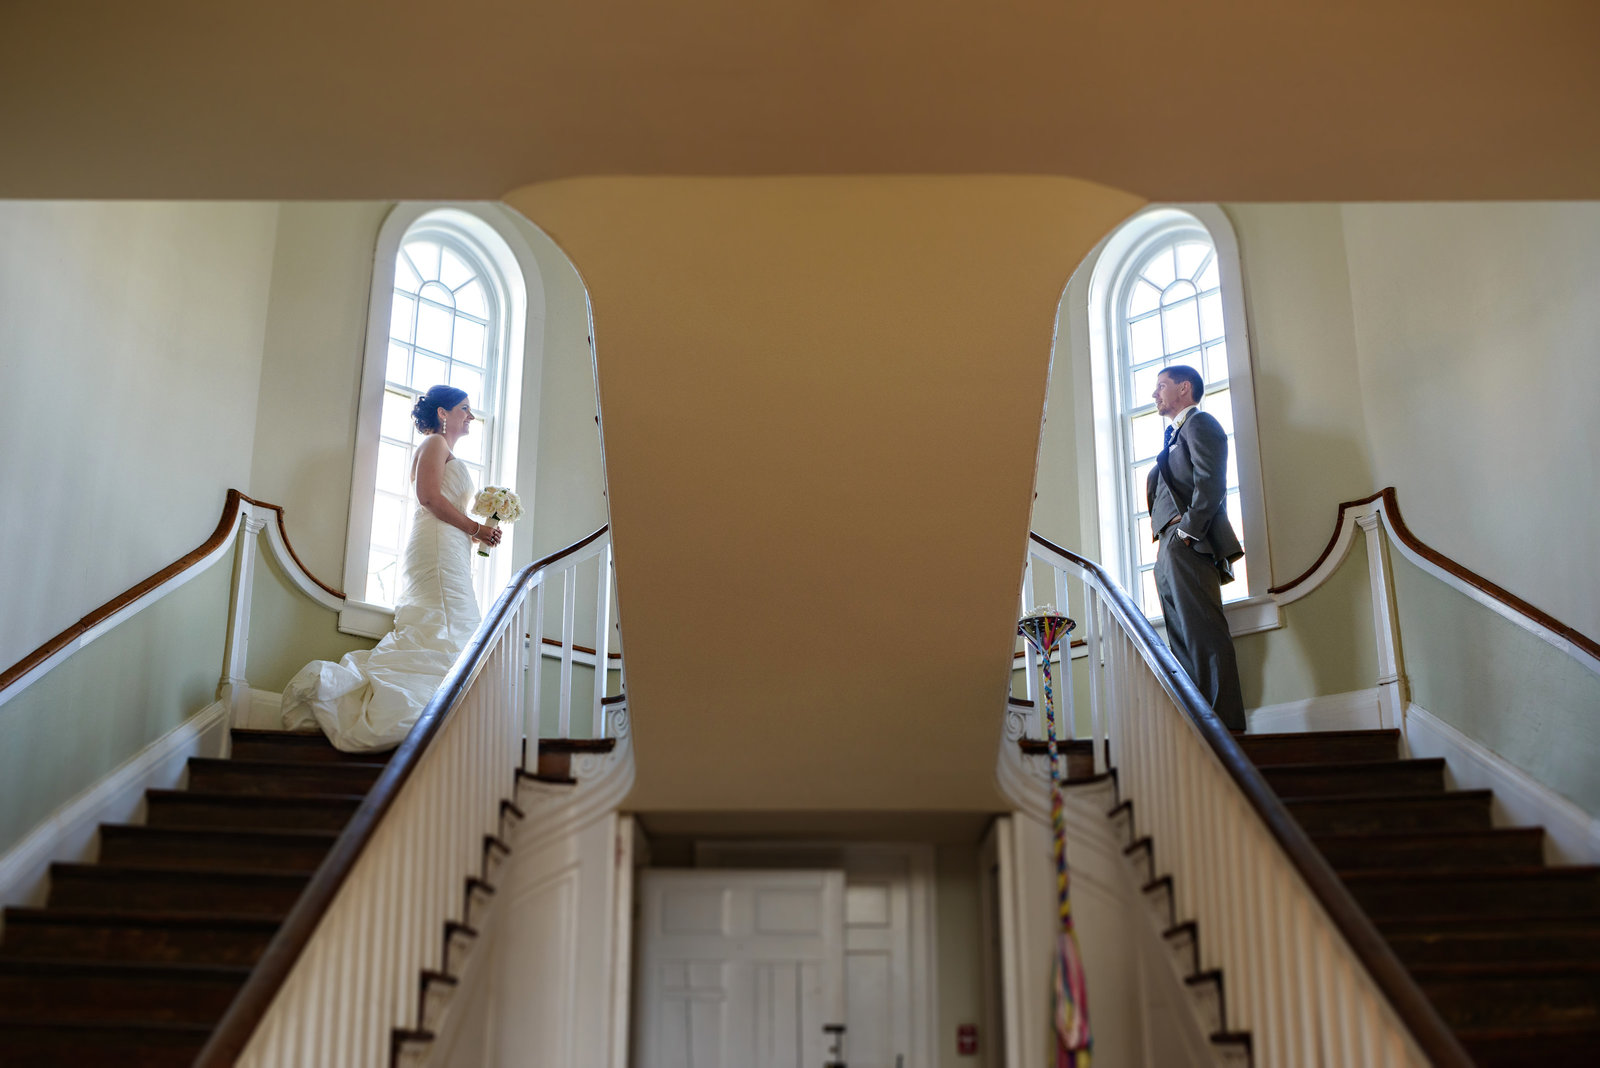 A couple have their first look at the top of the stairs.